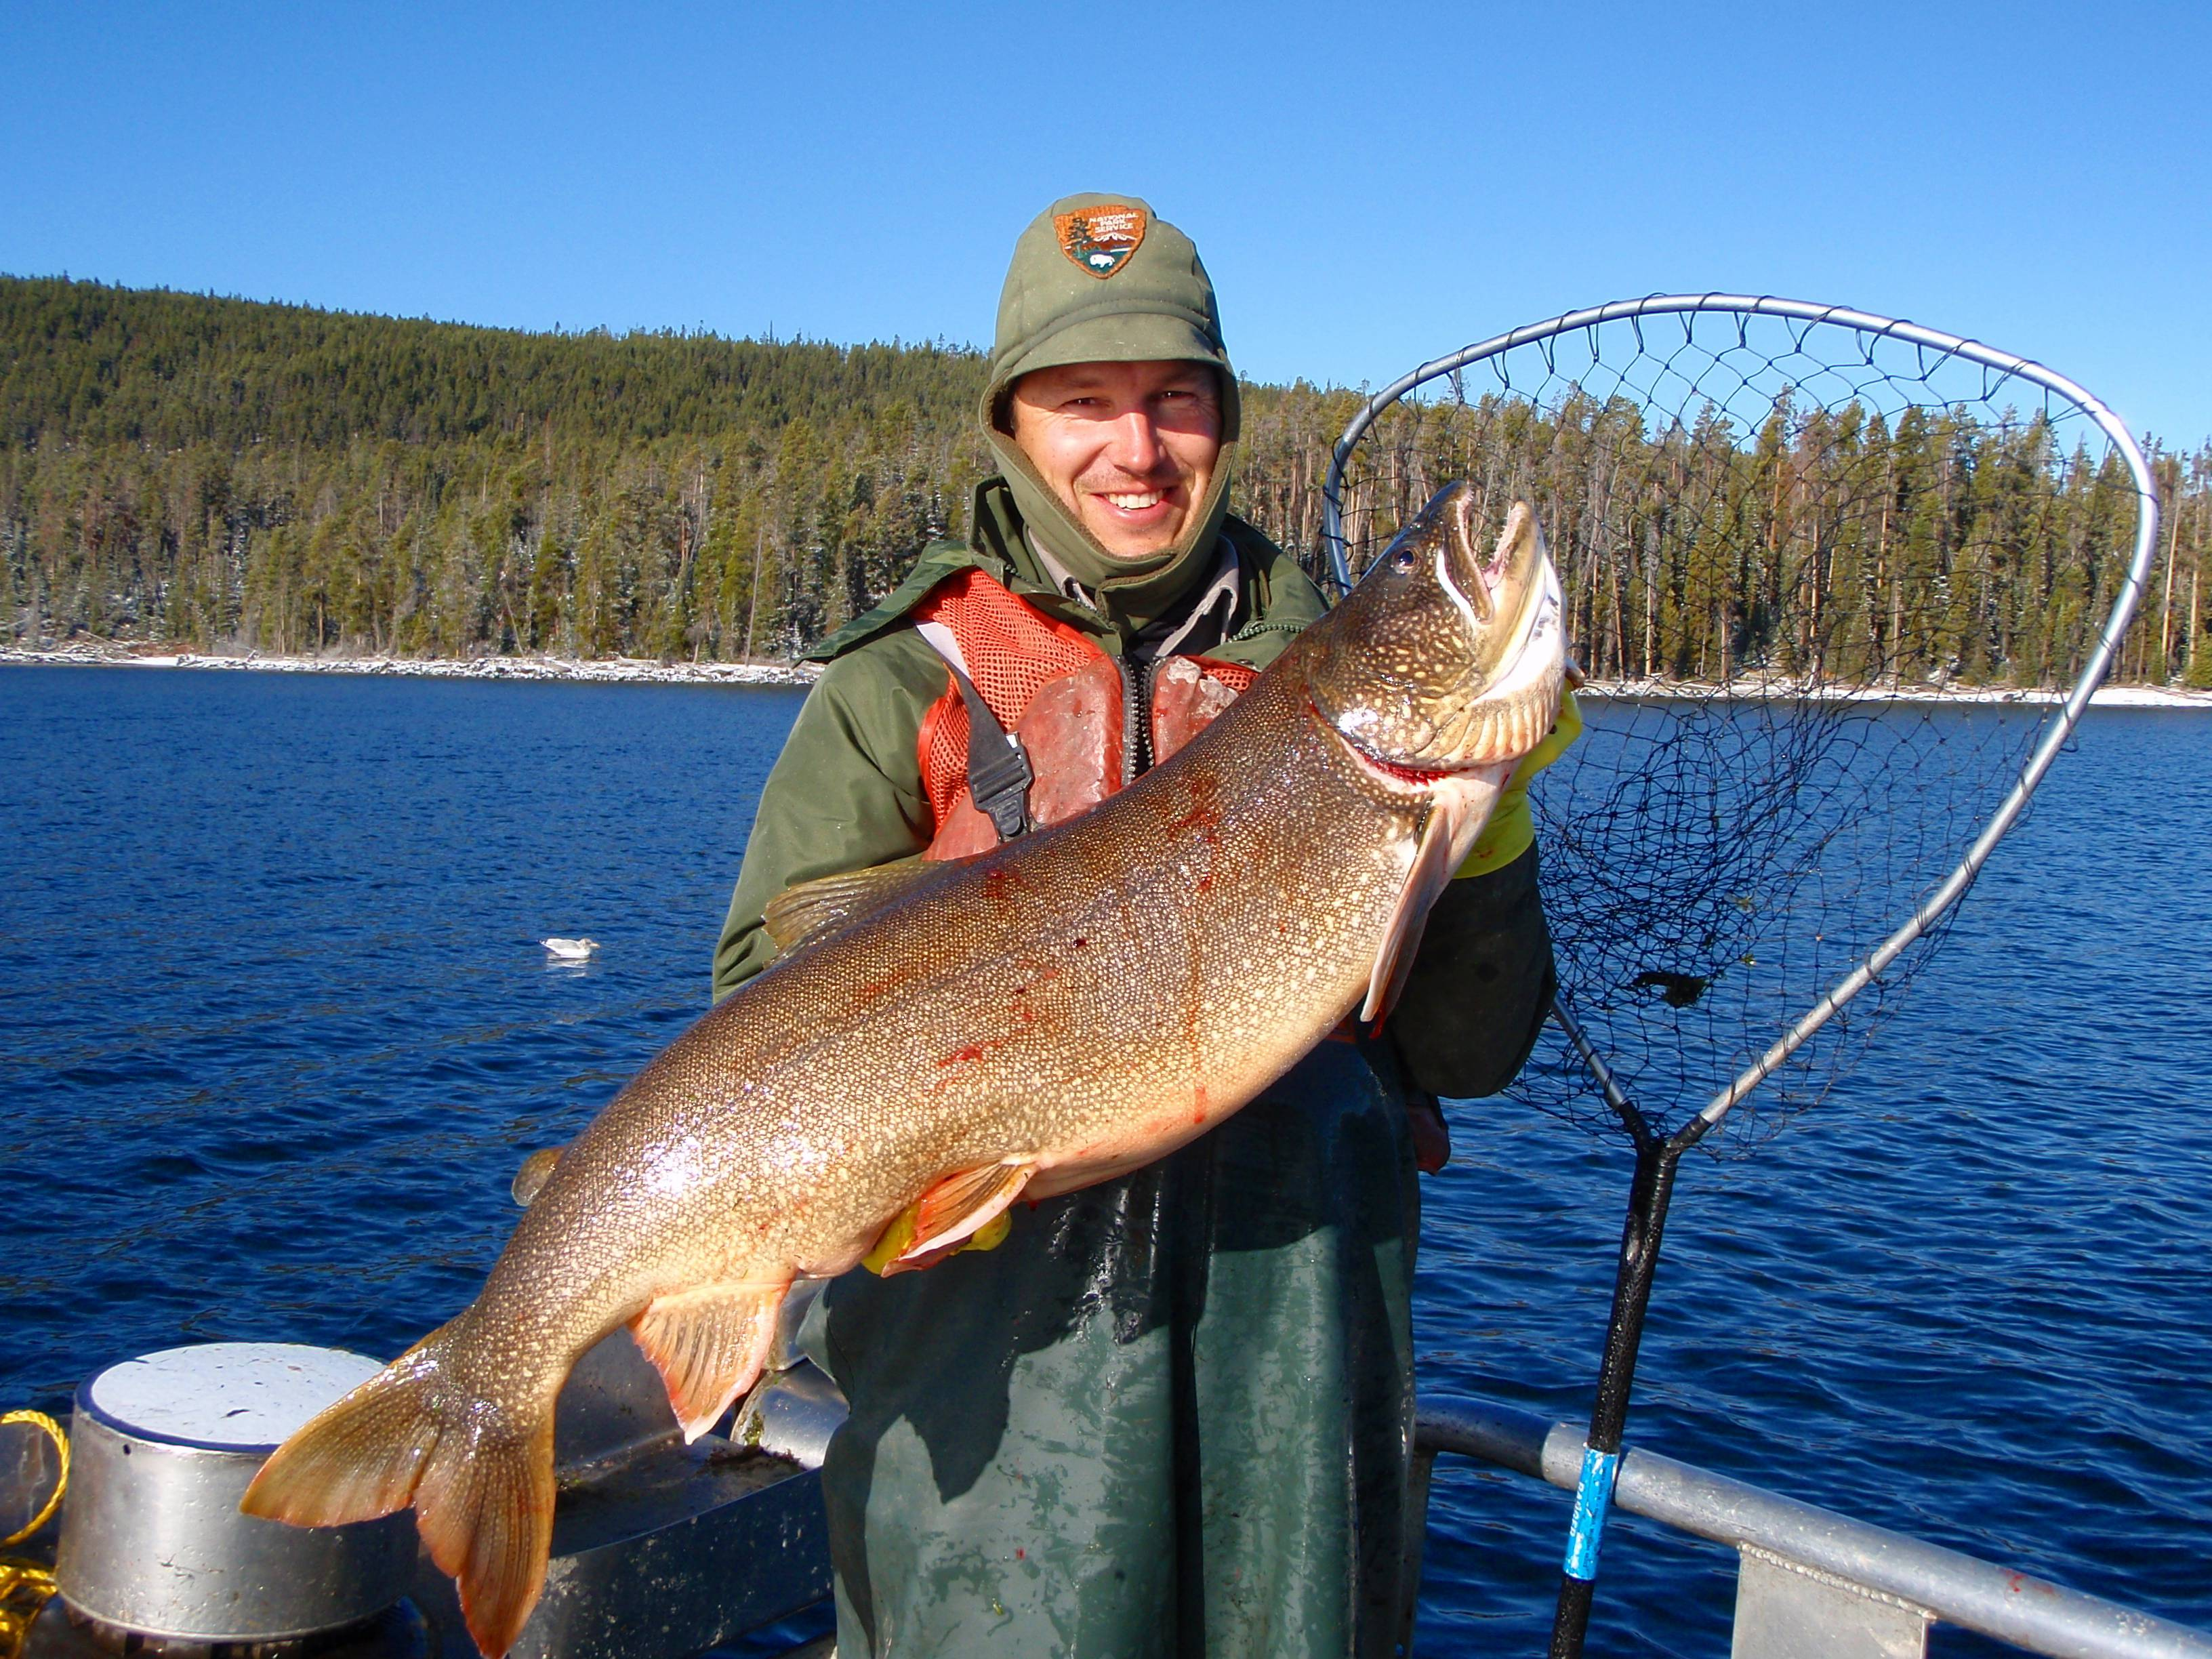 Philip Doepke, a fisheries biologist at Yellowstone National Park, holds a netted lake trout caught from Yellowstone Lake in Wyoming. Scientists say the voracious species of trout that entered Yellowstone Lake and decimated its native trout population appears to be in decline.